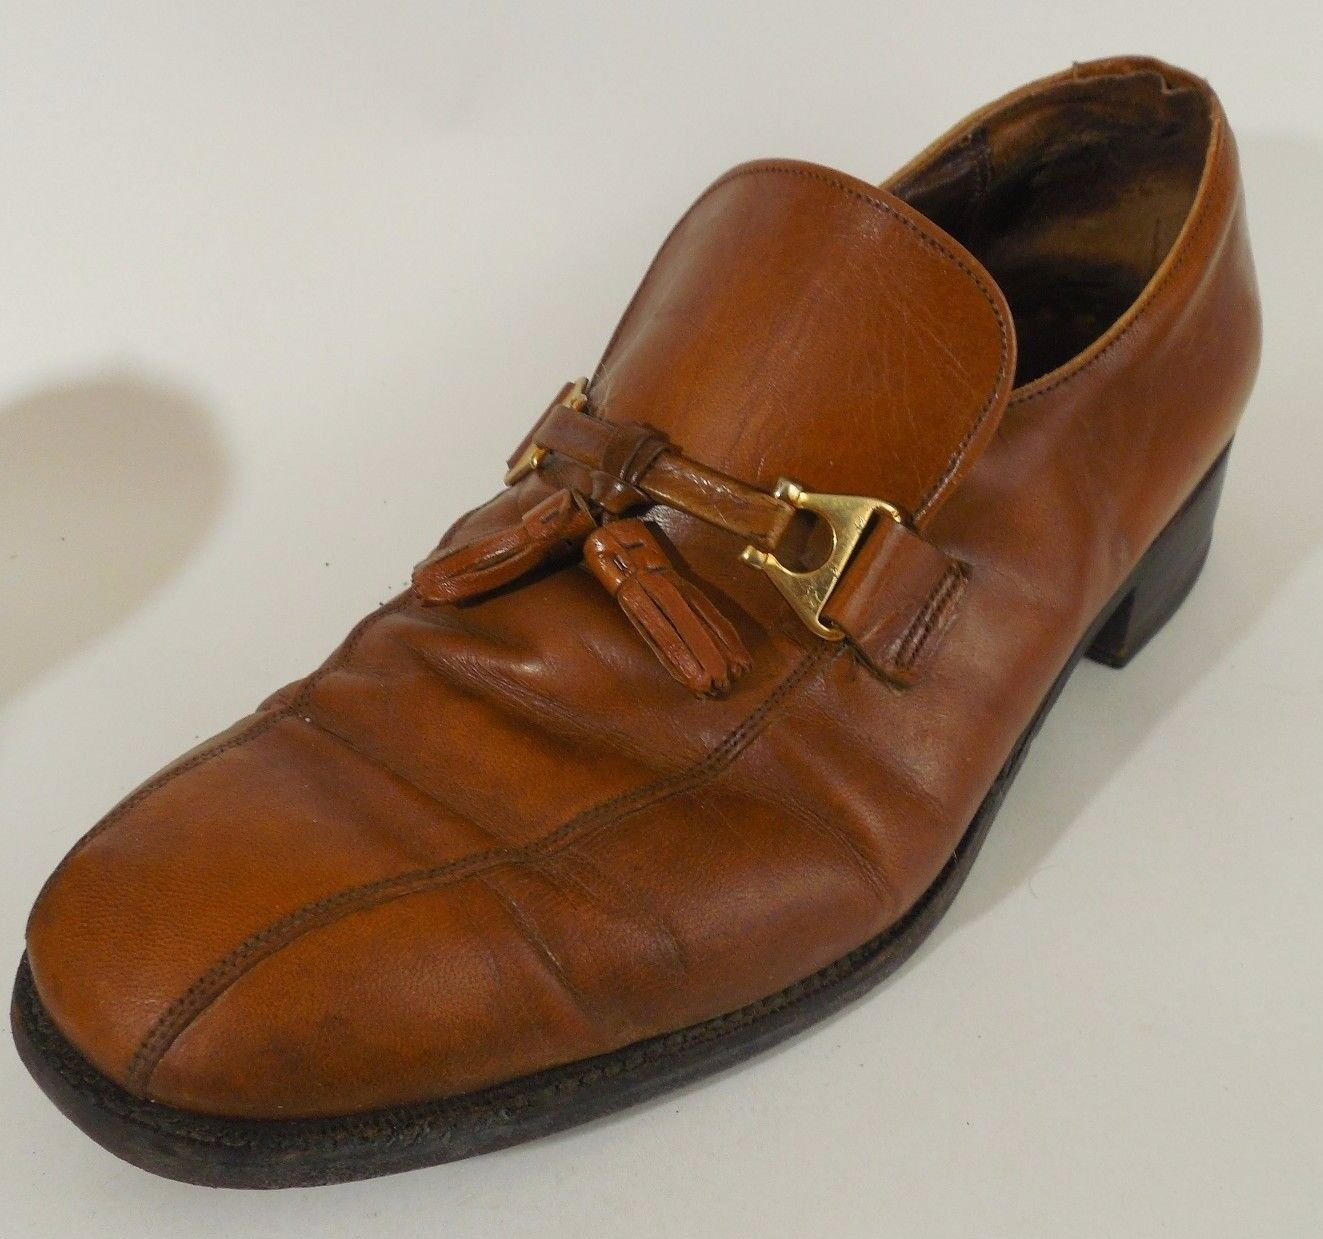 Florsheim Royal Imperial Mens Sz 9 D Brown Tassel Leather Dress shoes Preowned